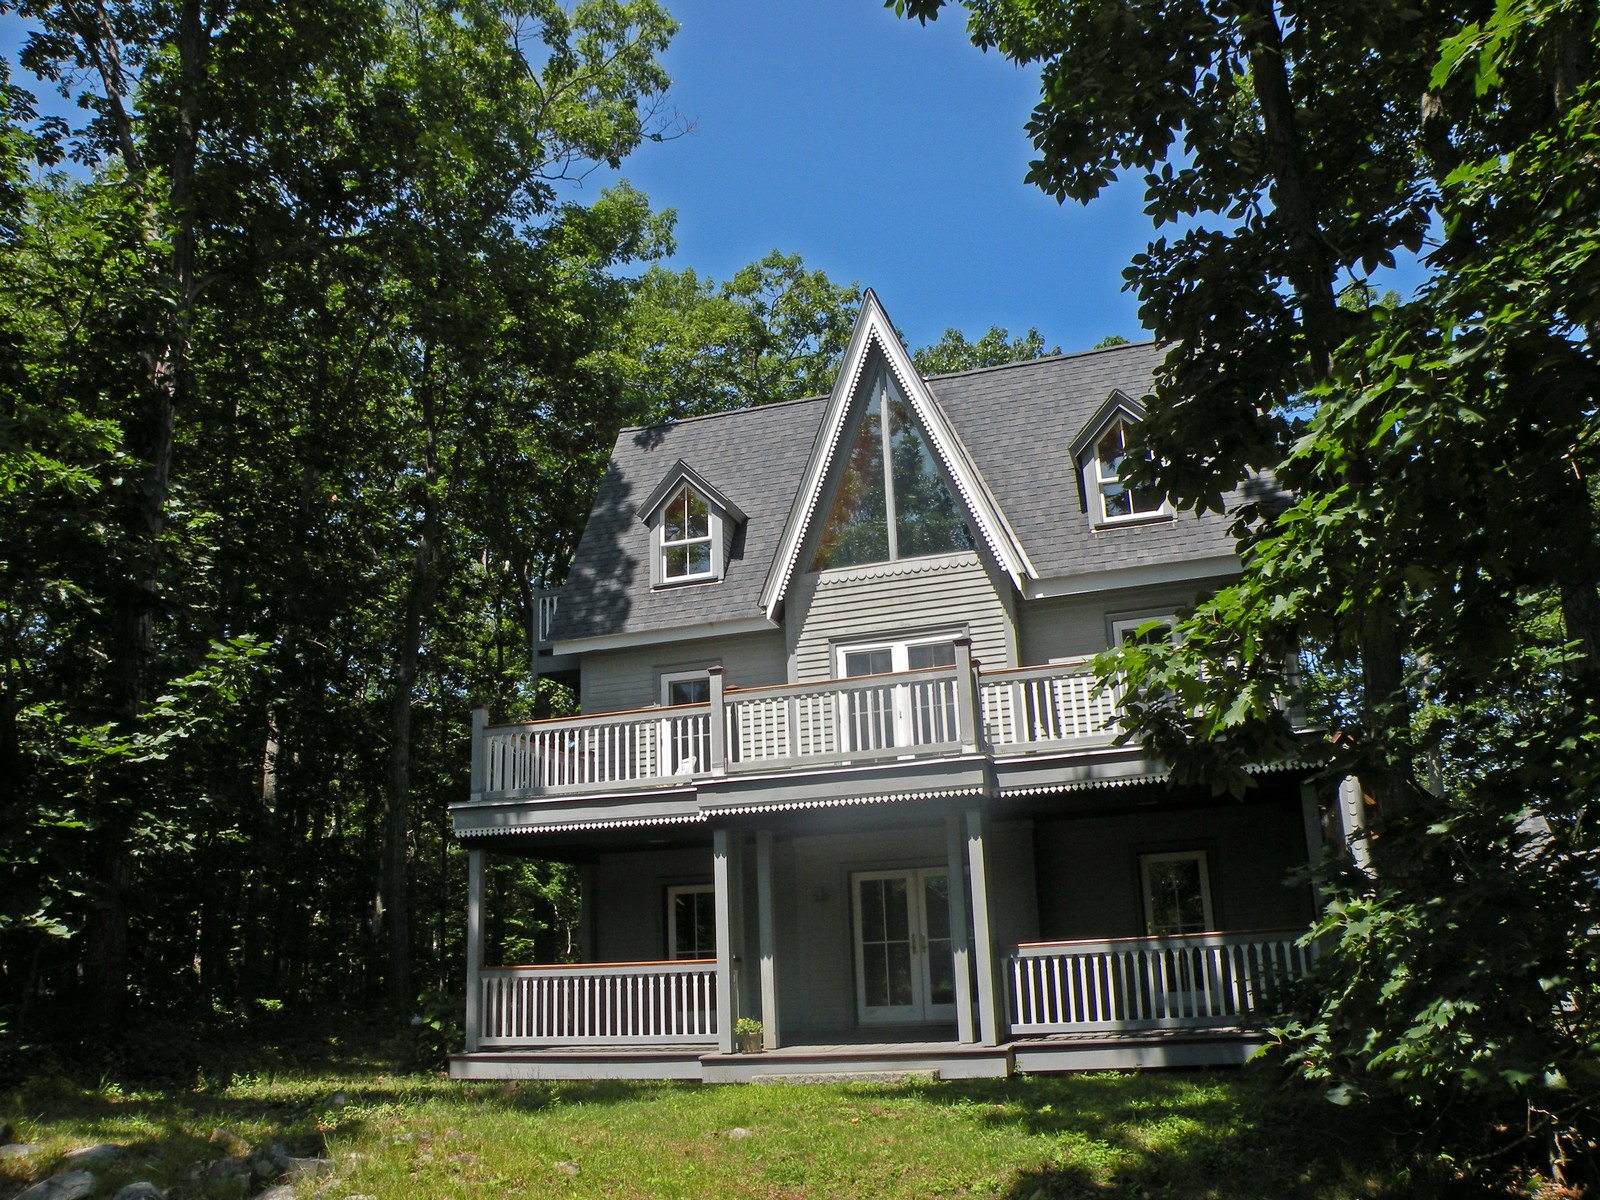 99 Goodwin Rd, Kittery Point, ME 03905